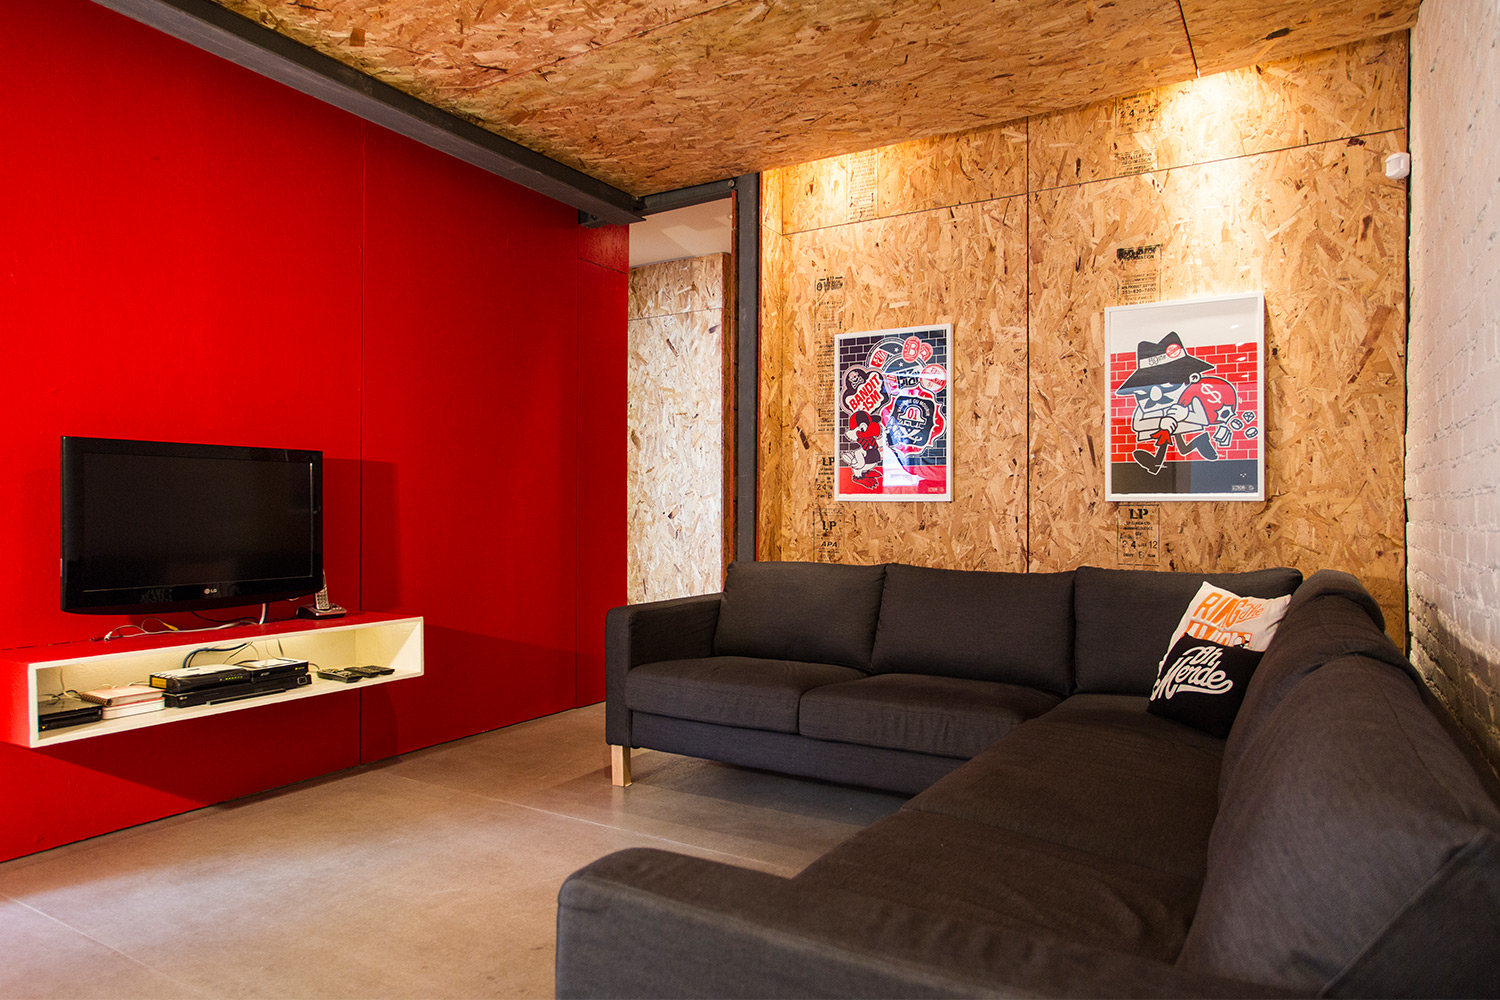 Renovation of an apartment on the plateau. White painted brick wall. Concrete floor. Ceiling and walls made of chipboard (OSB). Wall red accent. Posters 123 klan